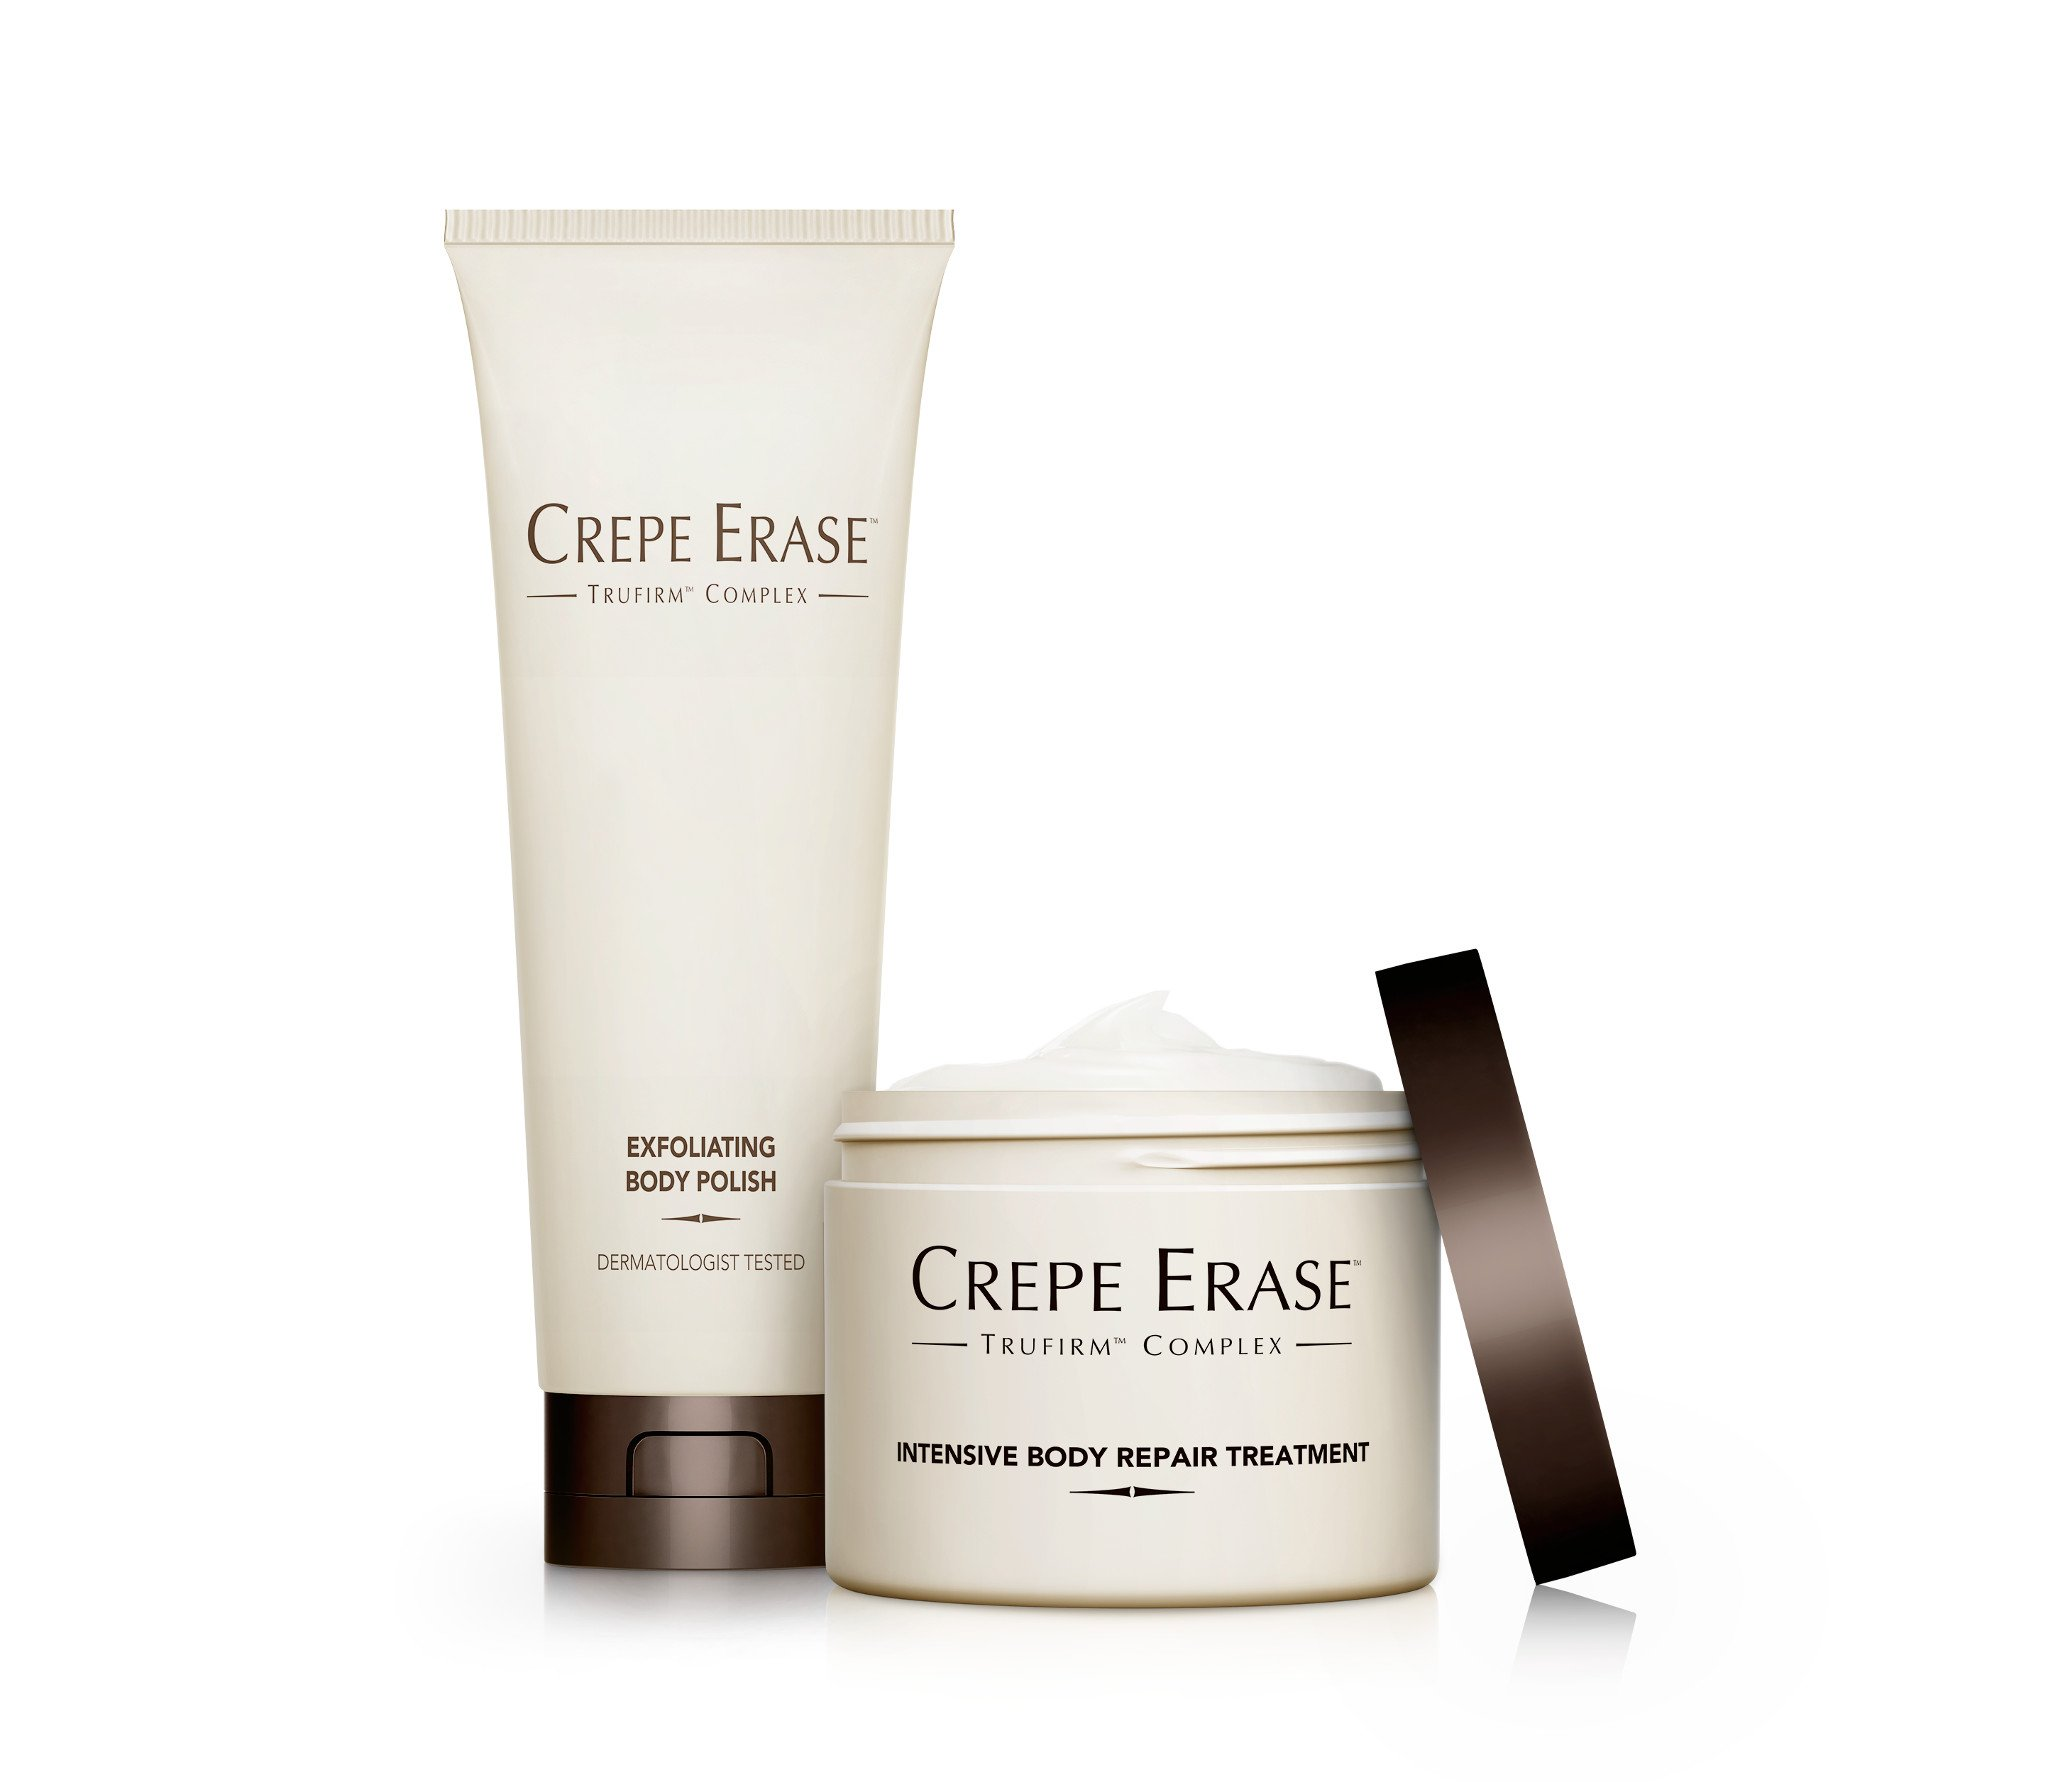 Crepe Erase – Full Size Body Duo – Nourishing and Hydrating System with TruFirm Complex – Intensive Body Repair Treatment and Exfoliating Body Polish – CS.2003